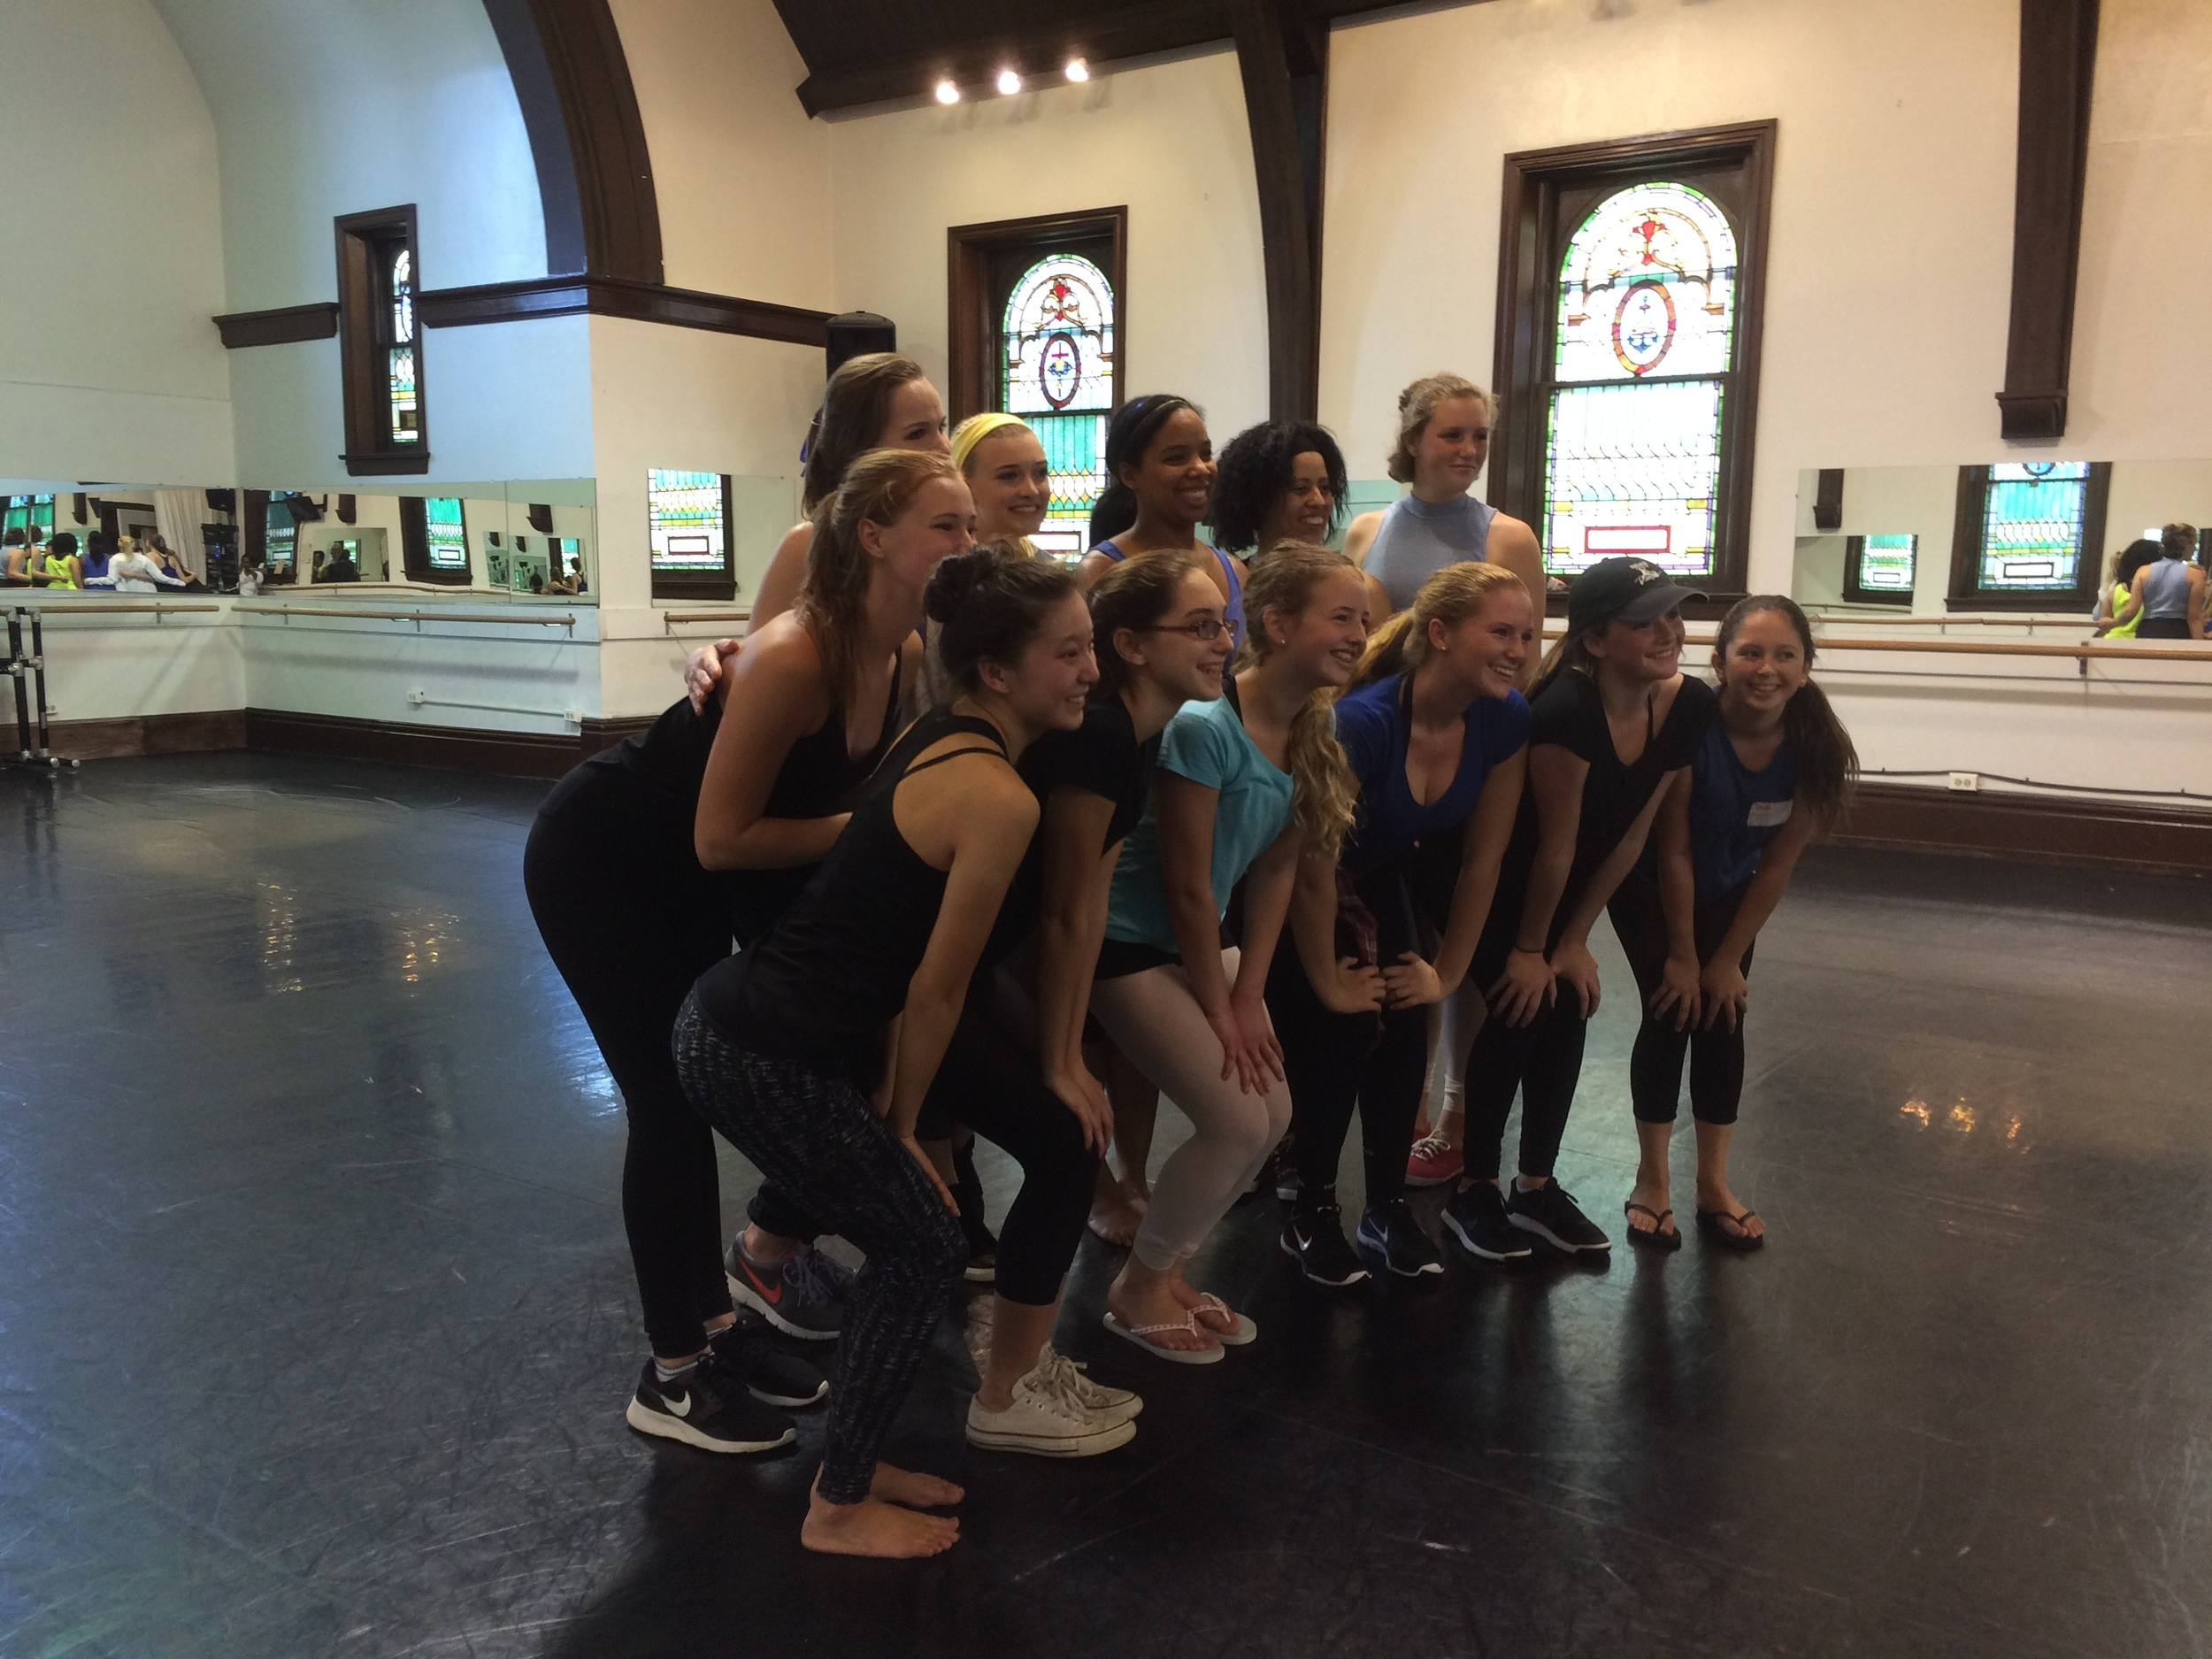 Kristen Murray & I with dancers from Hershey School of Dance. Photo: Hollis Healy